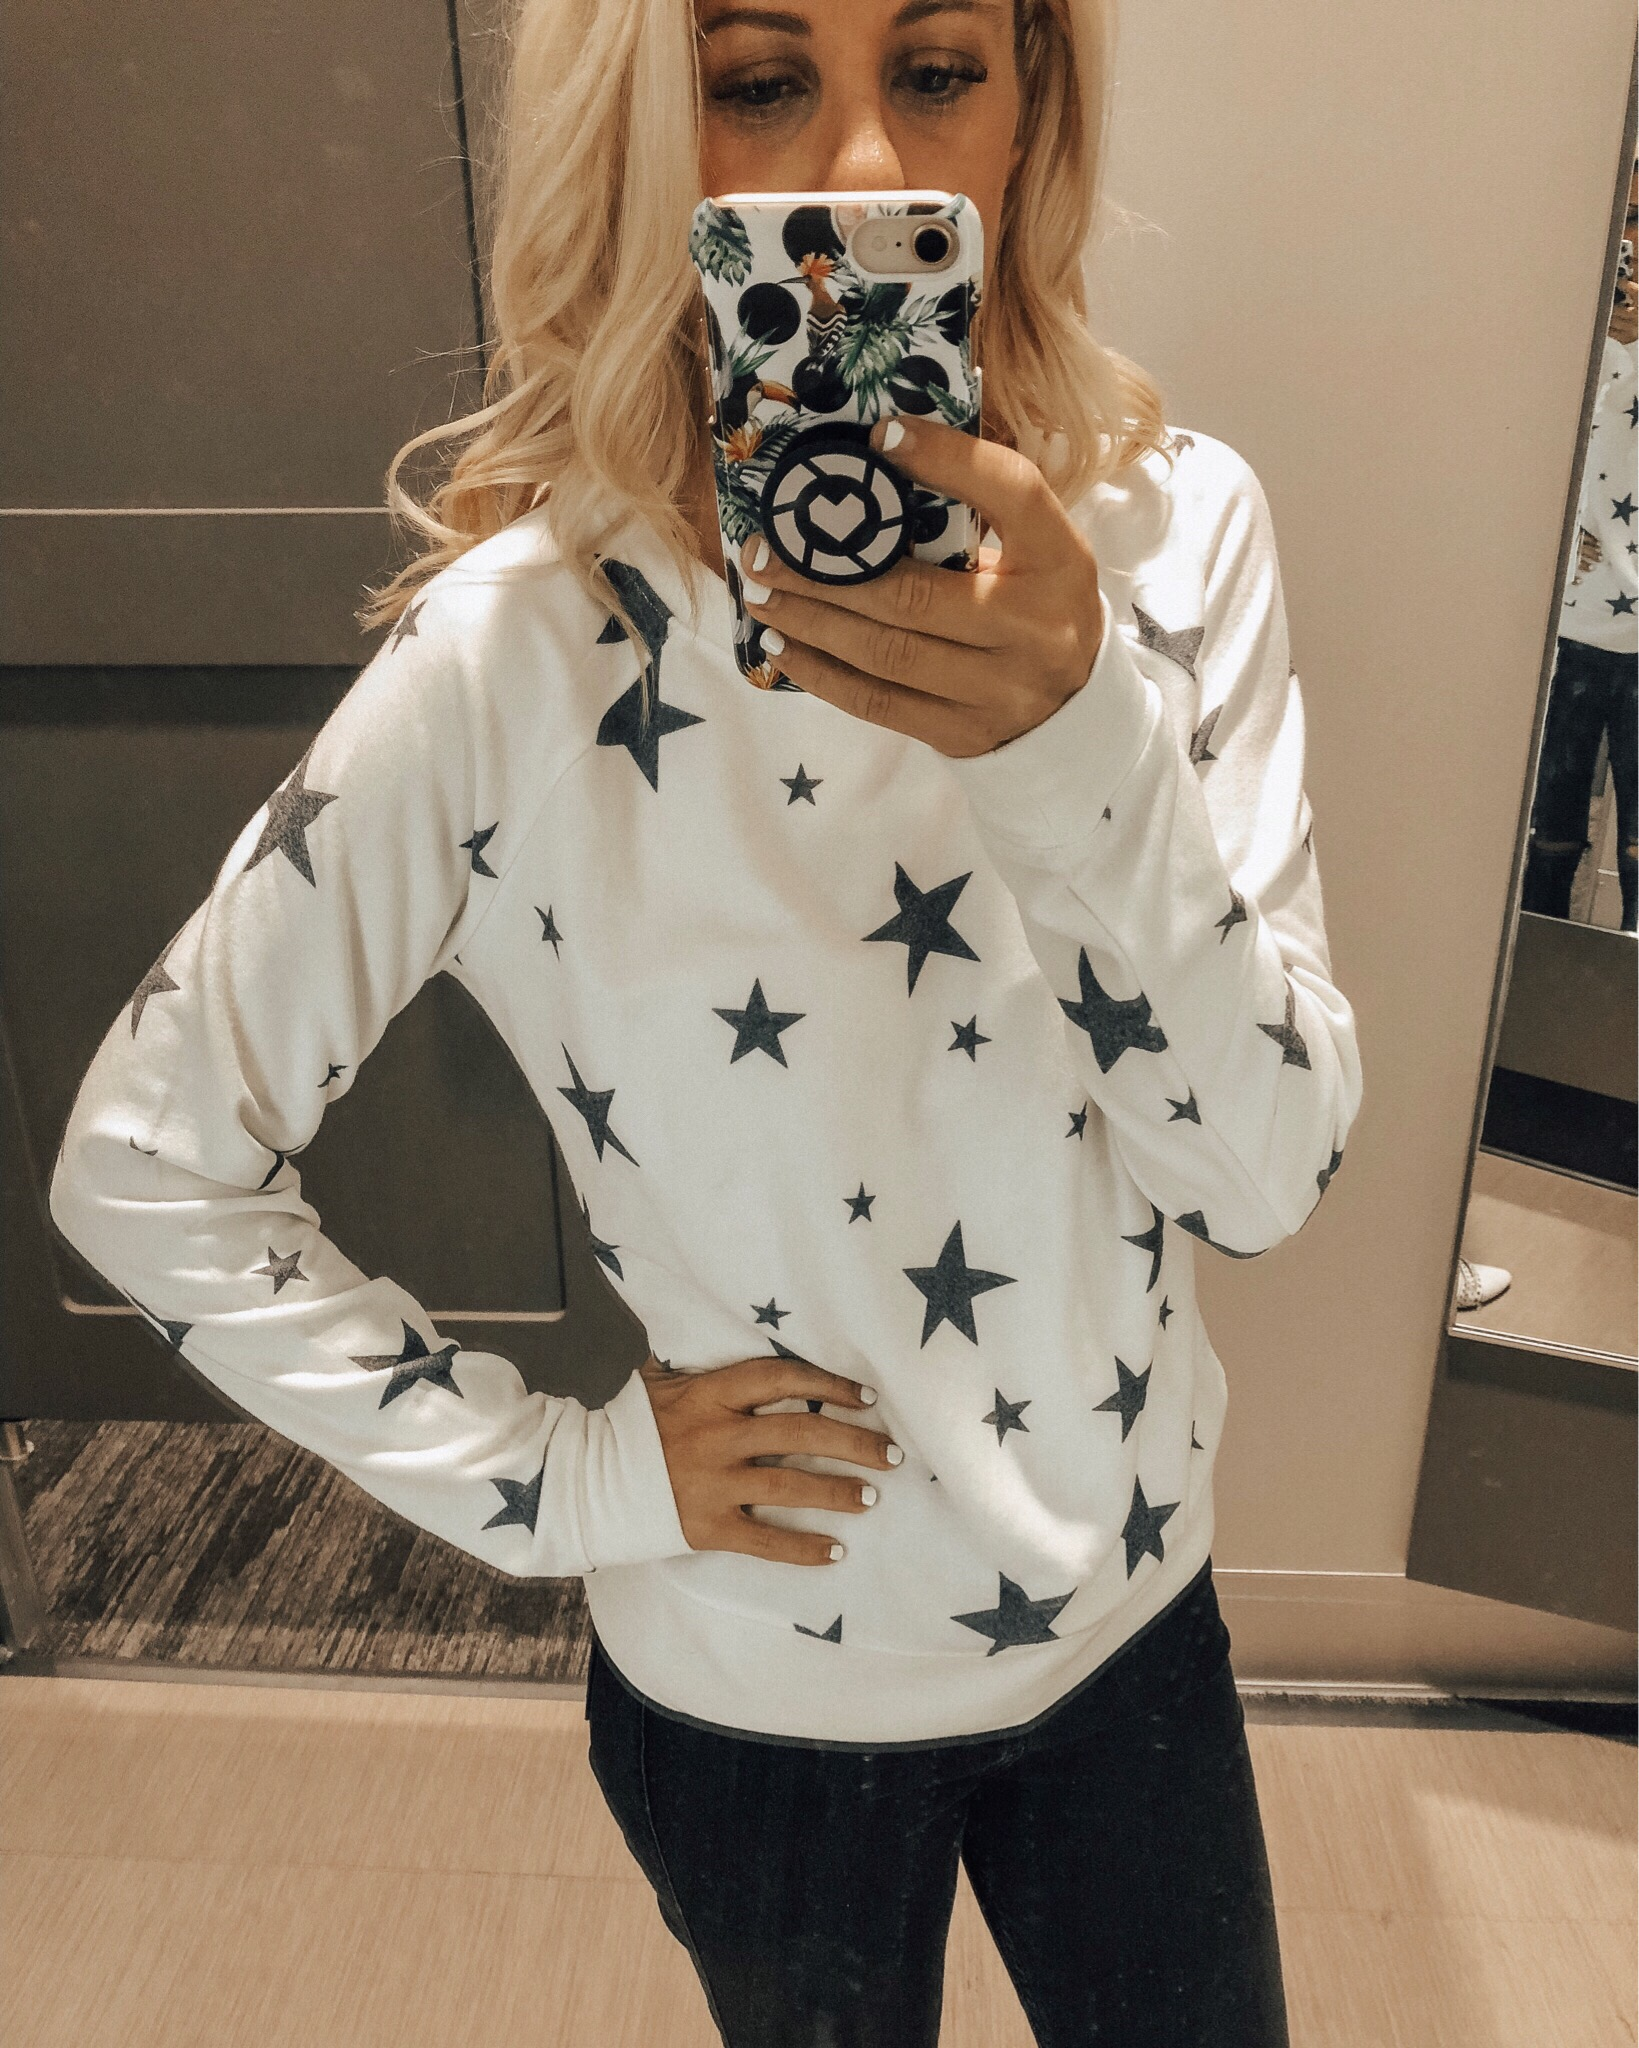 DECEMBER TOP 10- Jaclyn De Leon Style + top selling items for the month + star print sweatshirt + cozy casual style + target style + mom style + winter outfit + lounge set + fleece top